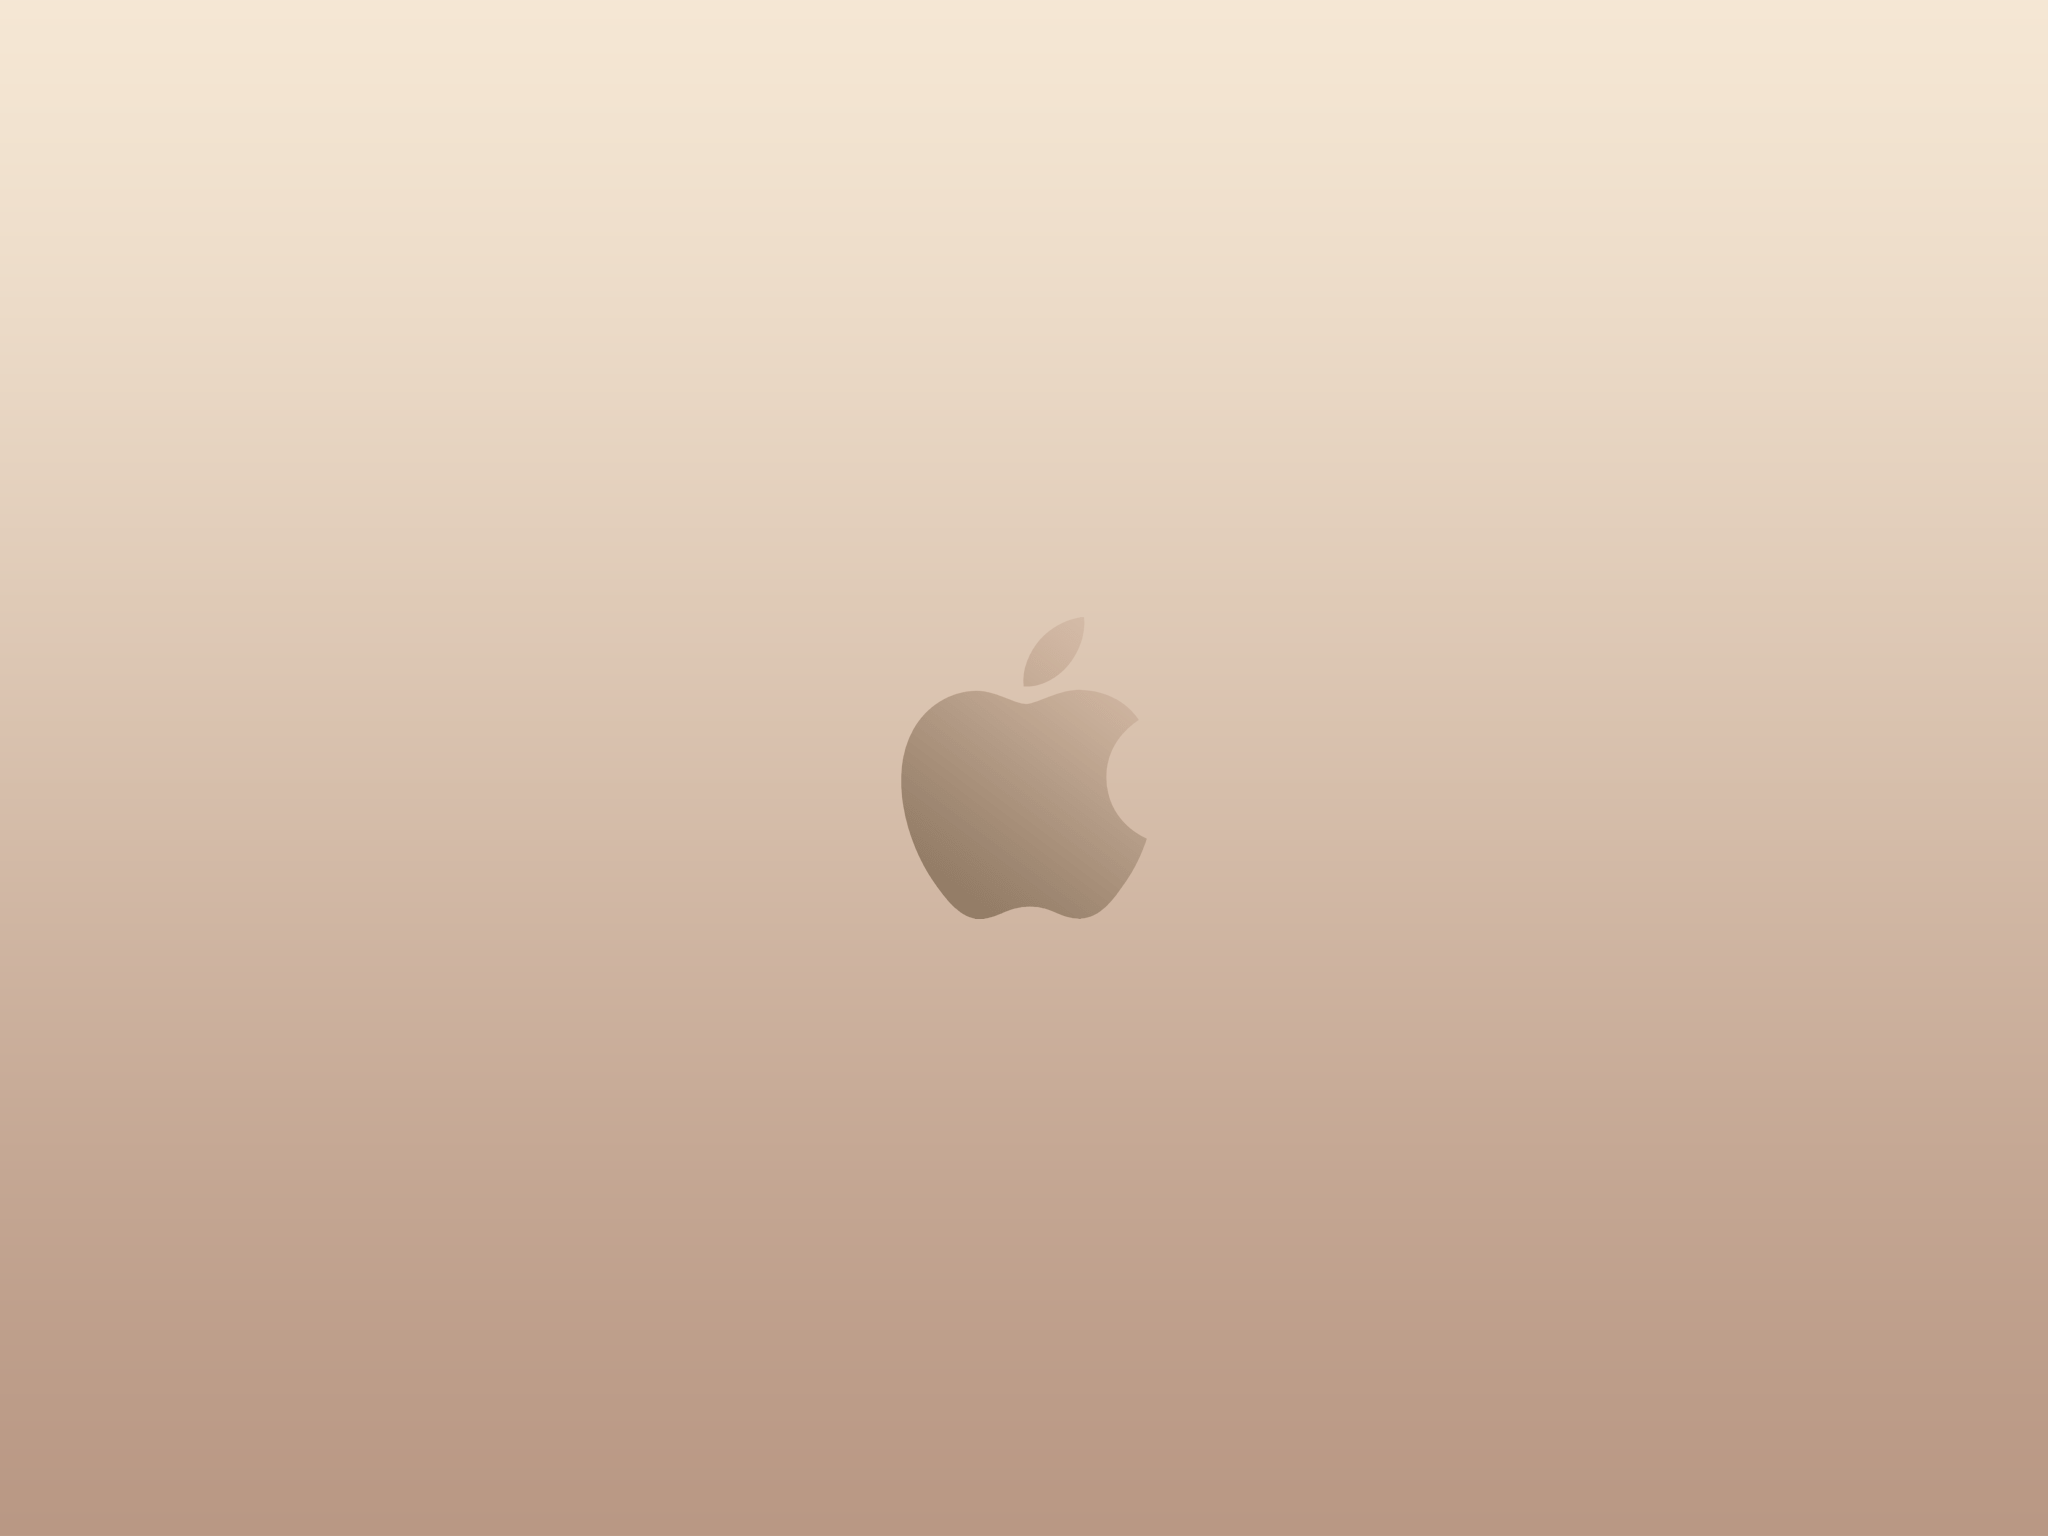 2019 year for girls- Apple gold wallpaper hd